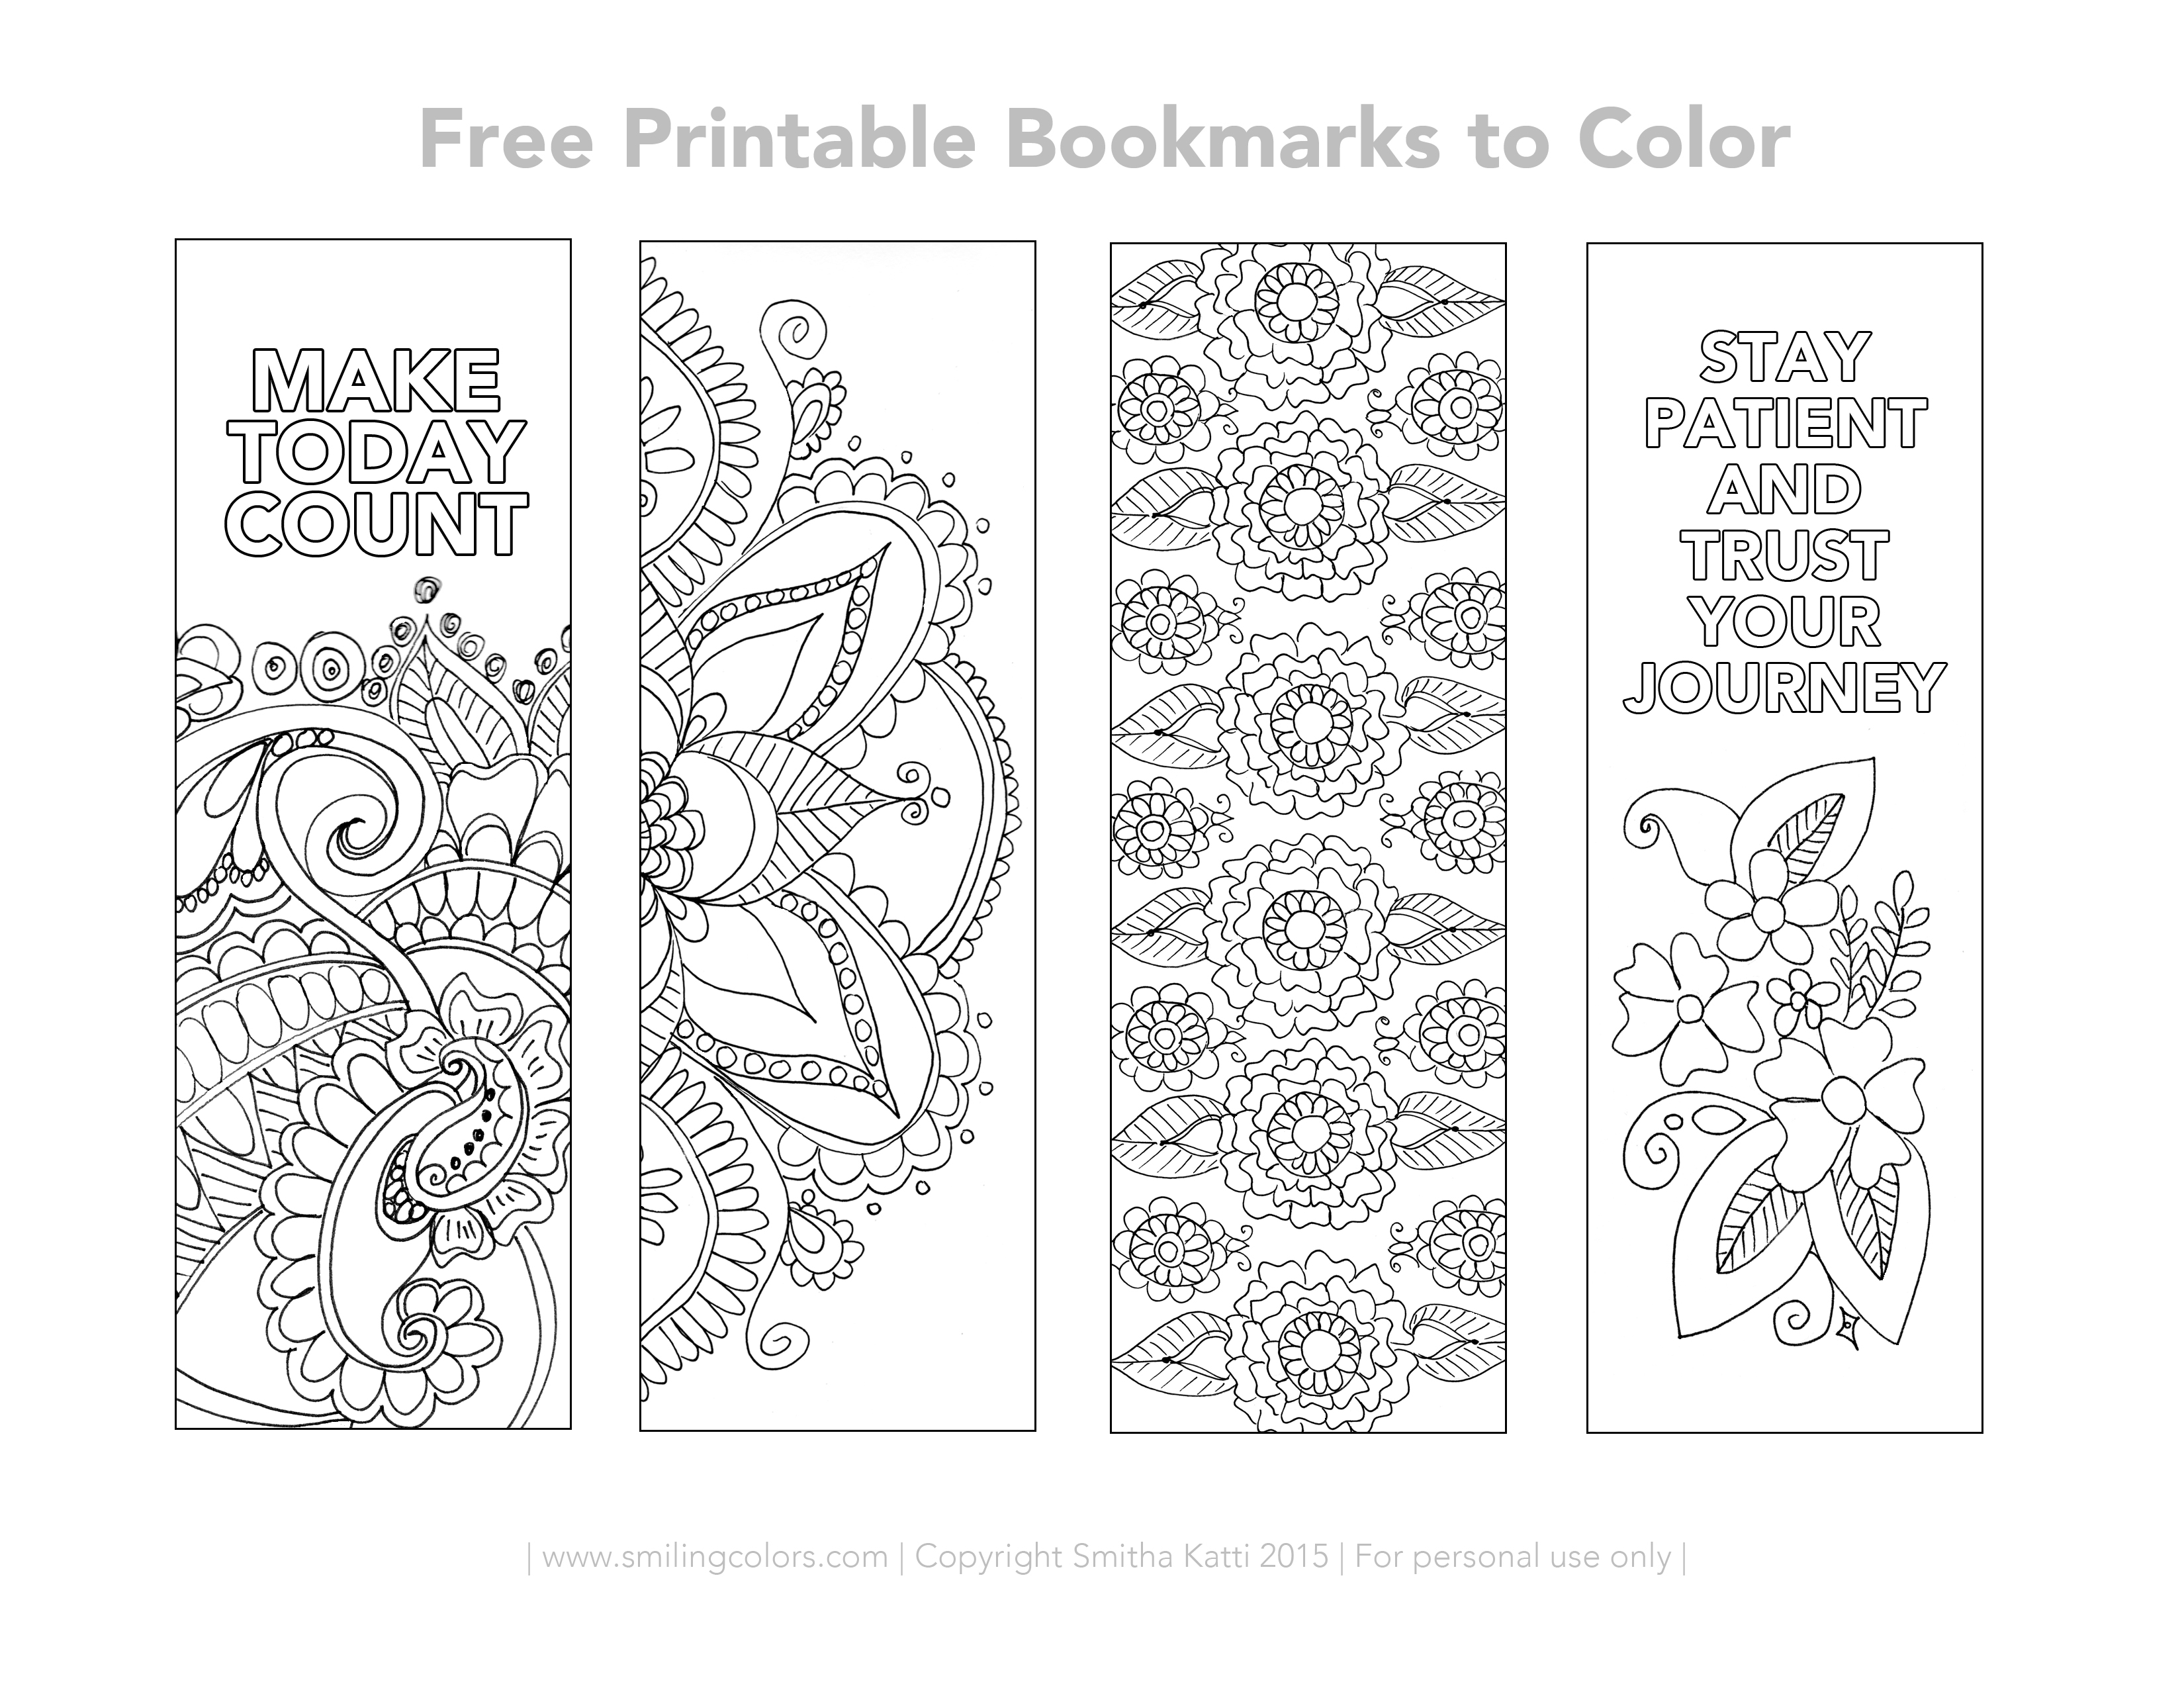 photograph about Printable Bookmarks for Adults named No cost Printable Bookmarks in the direction of shade - Smitha Katti